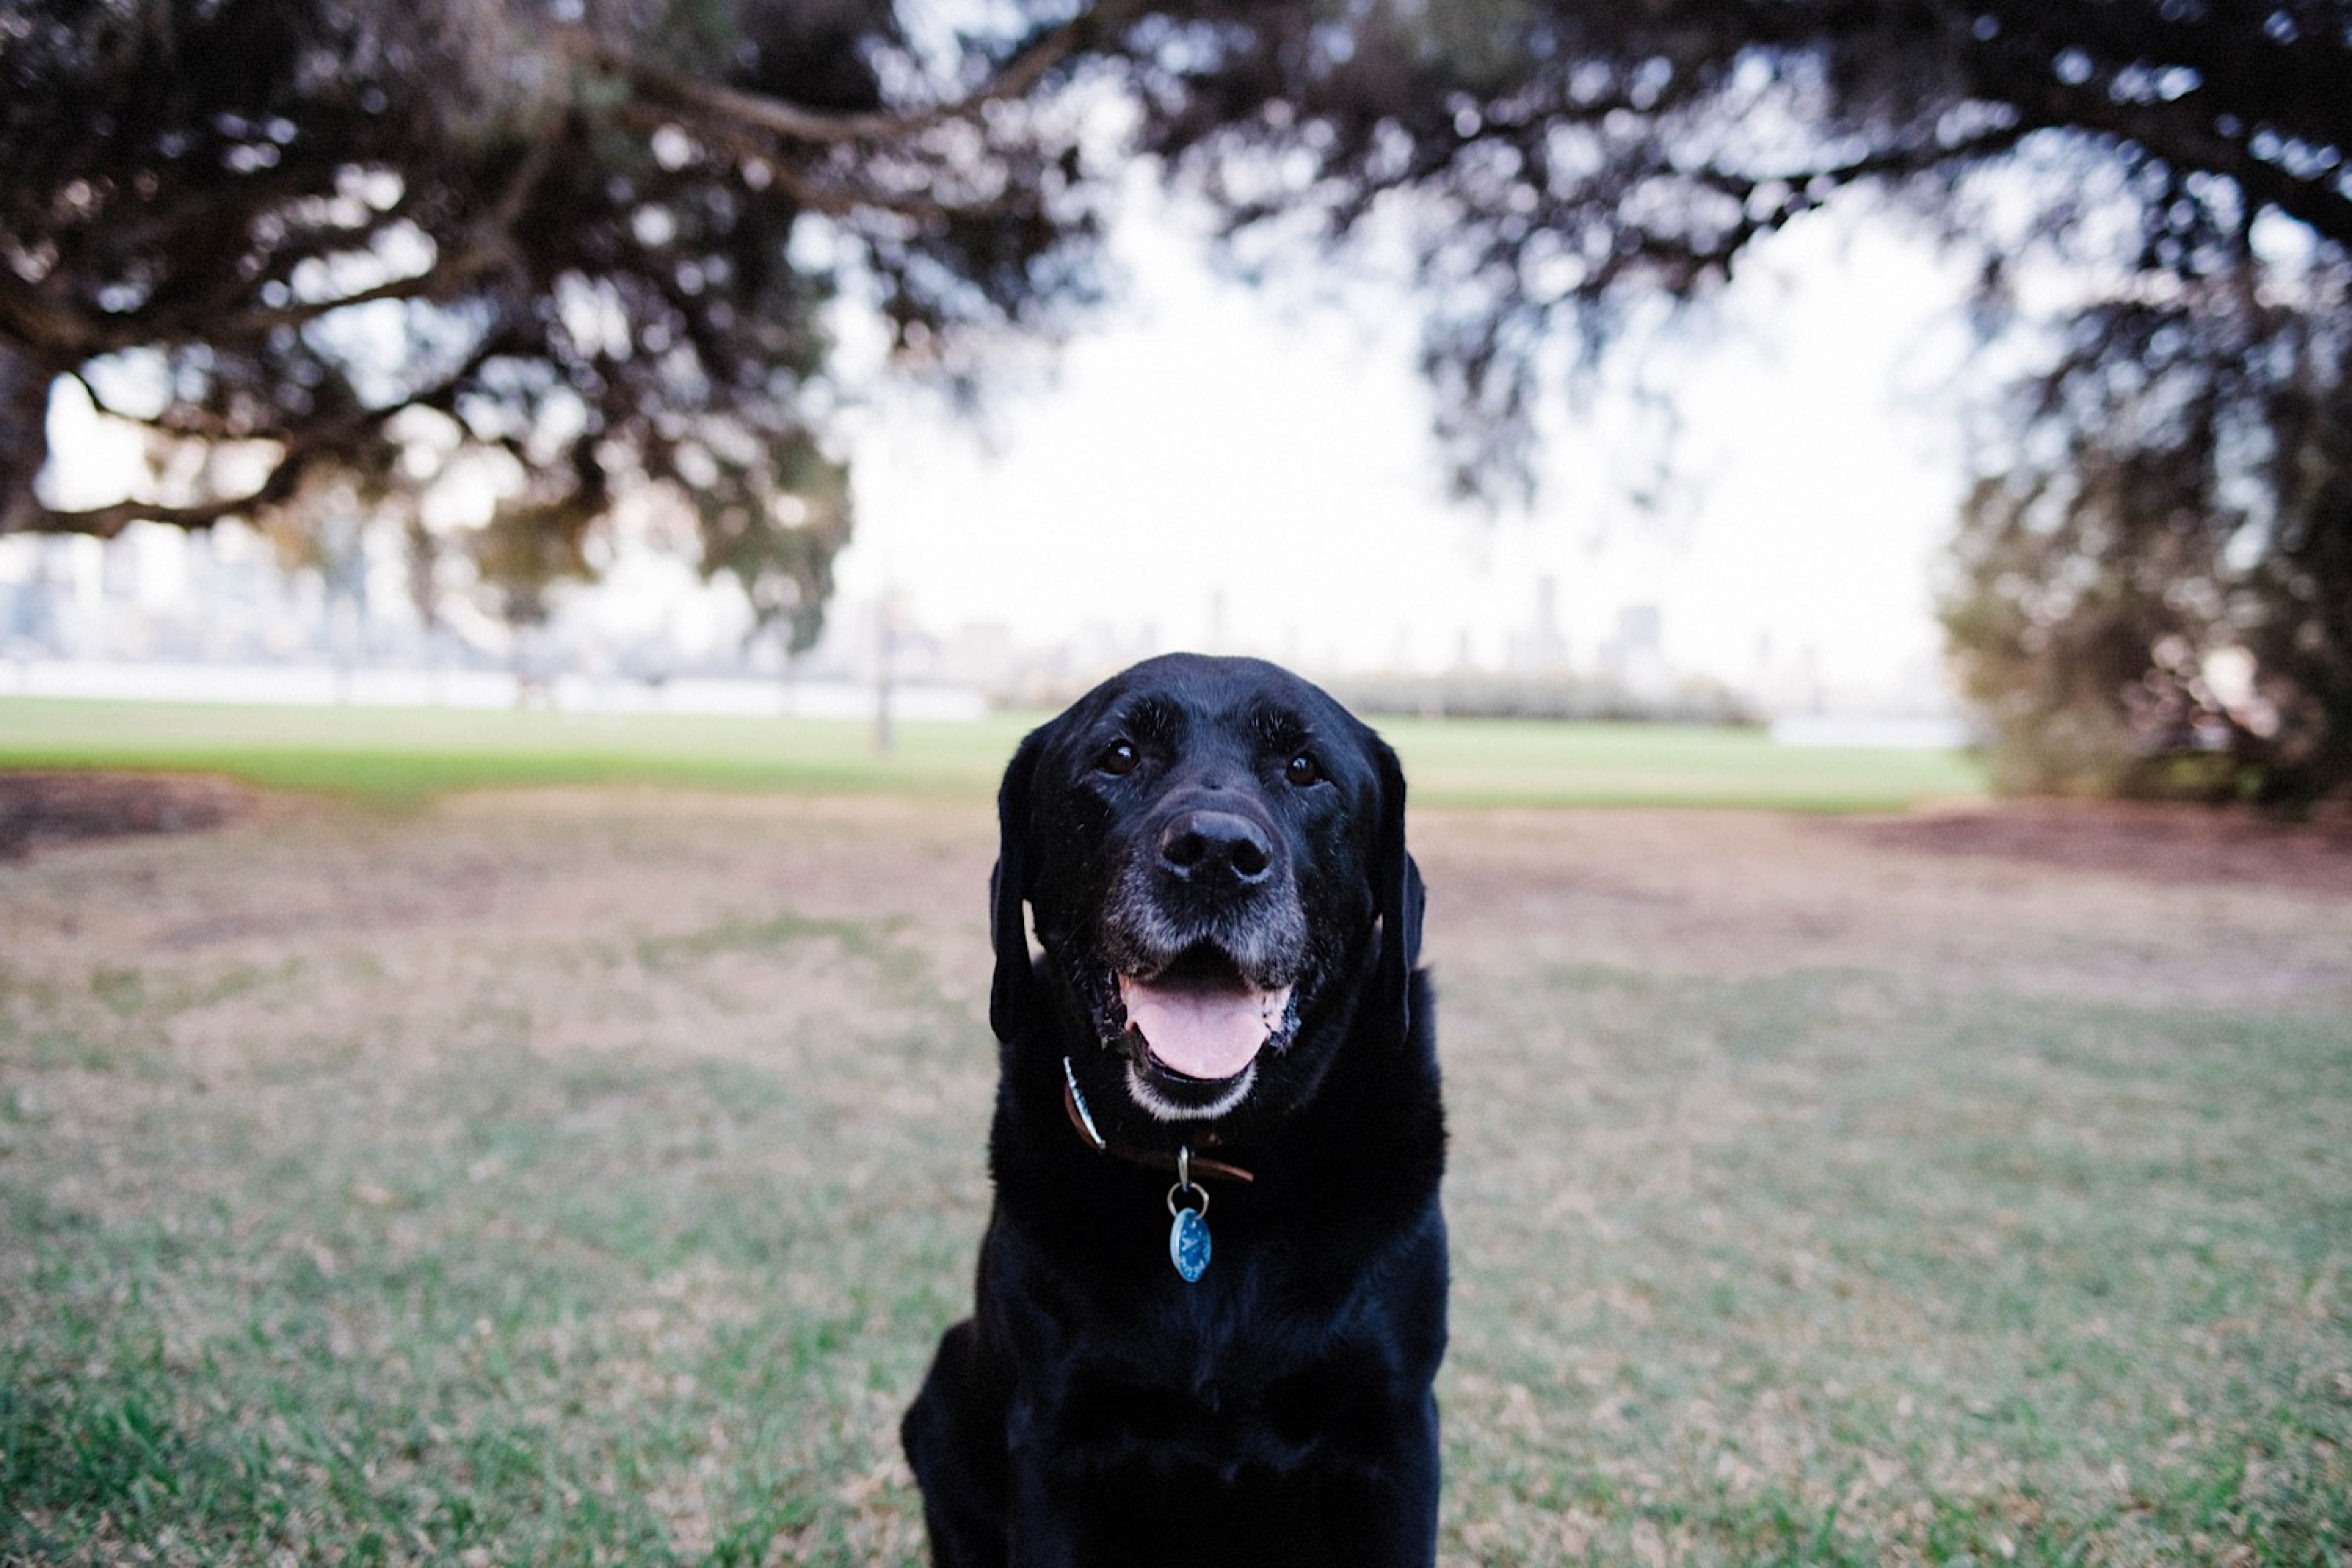 A portrait of an old black Labrador, looking at the camera with her tongue out.